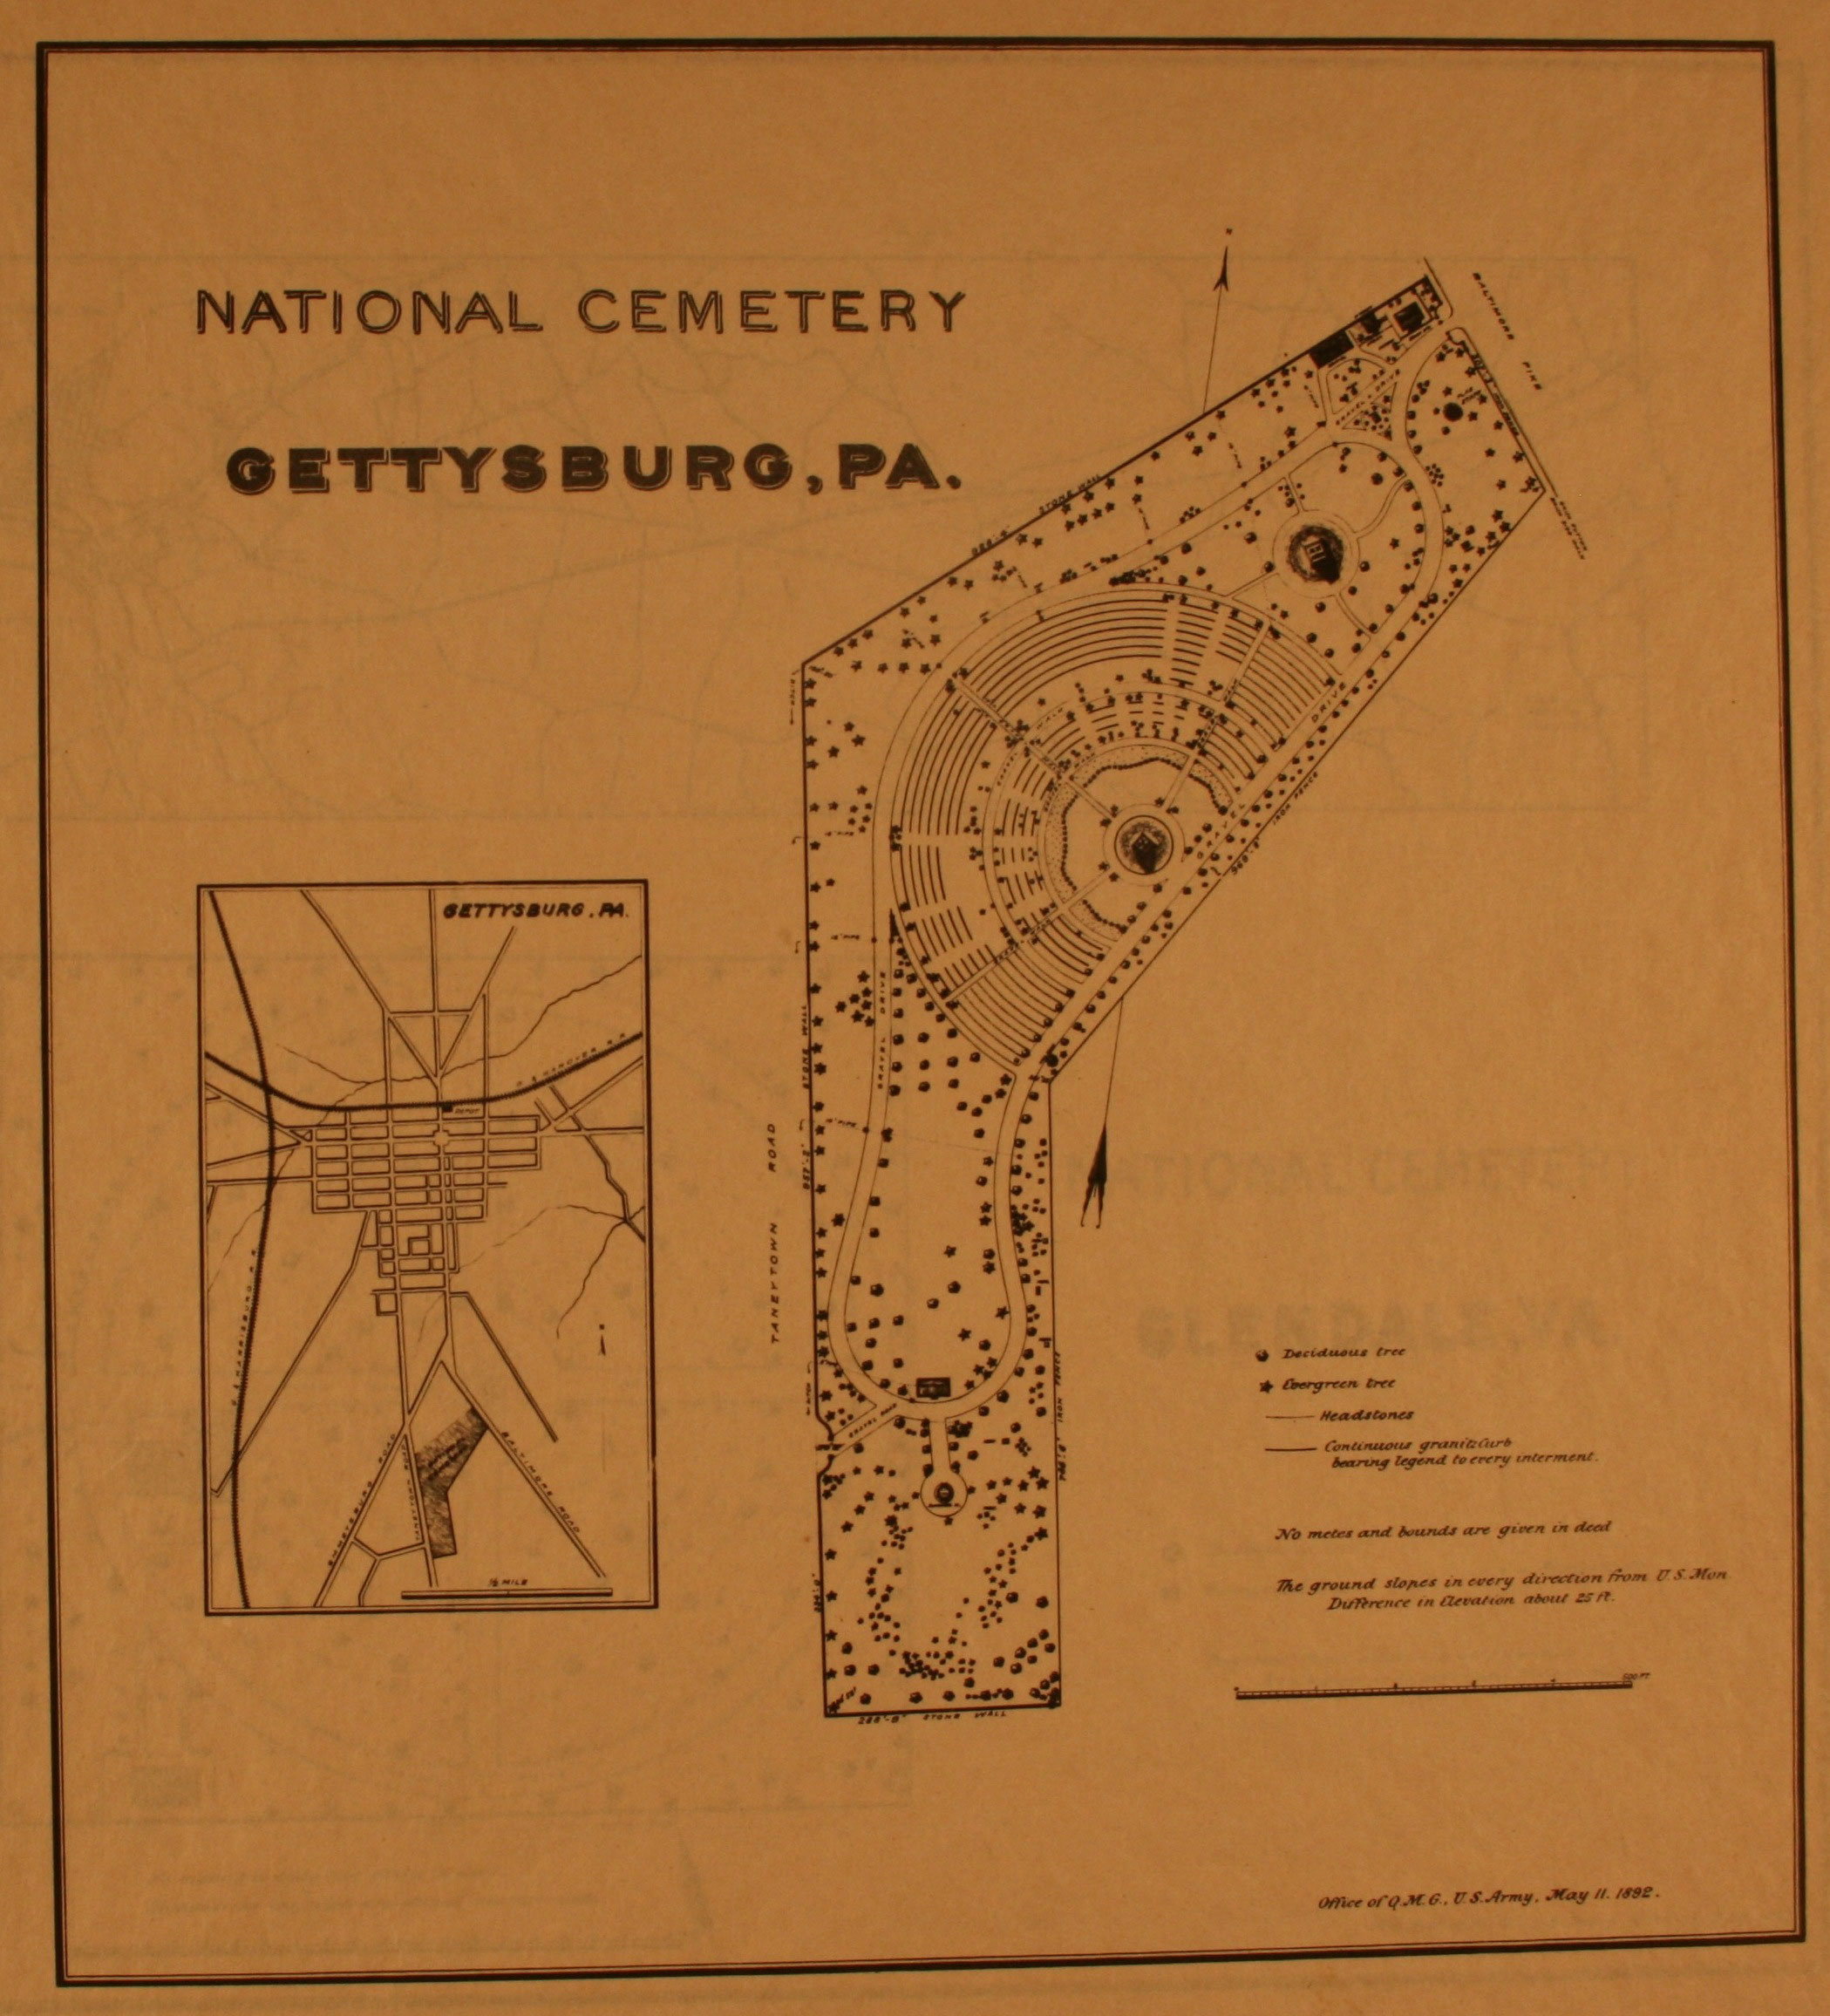 Gettysburg National Cemeterycivil War Era National Cemeteries A   Site Plan Of Gettysburg National Cemetery Courtesy Of The National  Archives And Records Administration Click On Image To Enlarge